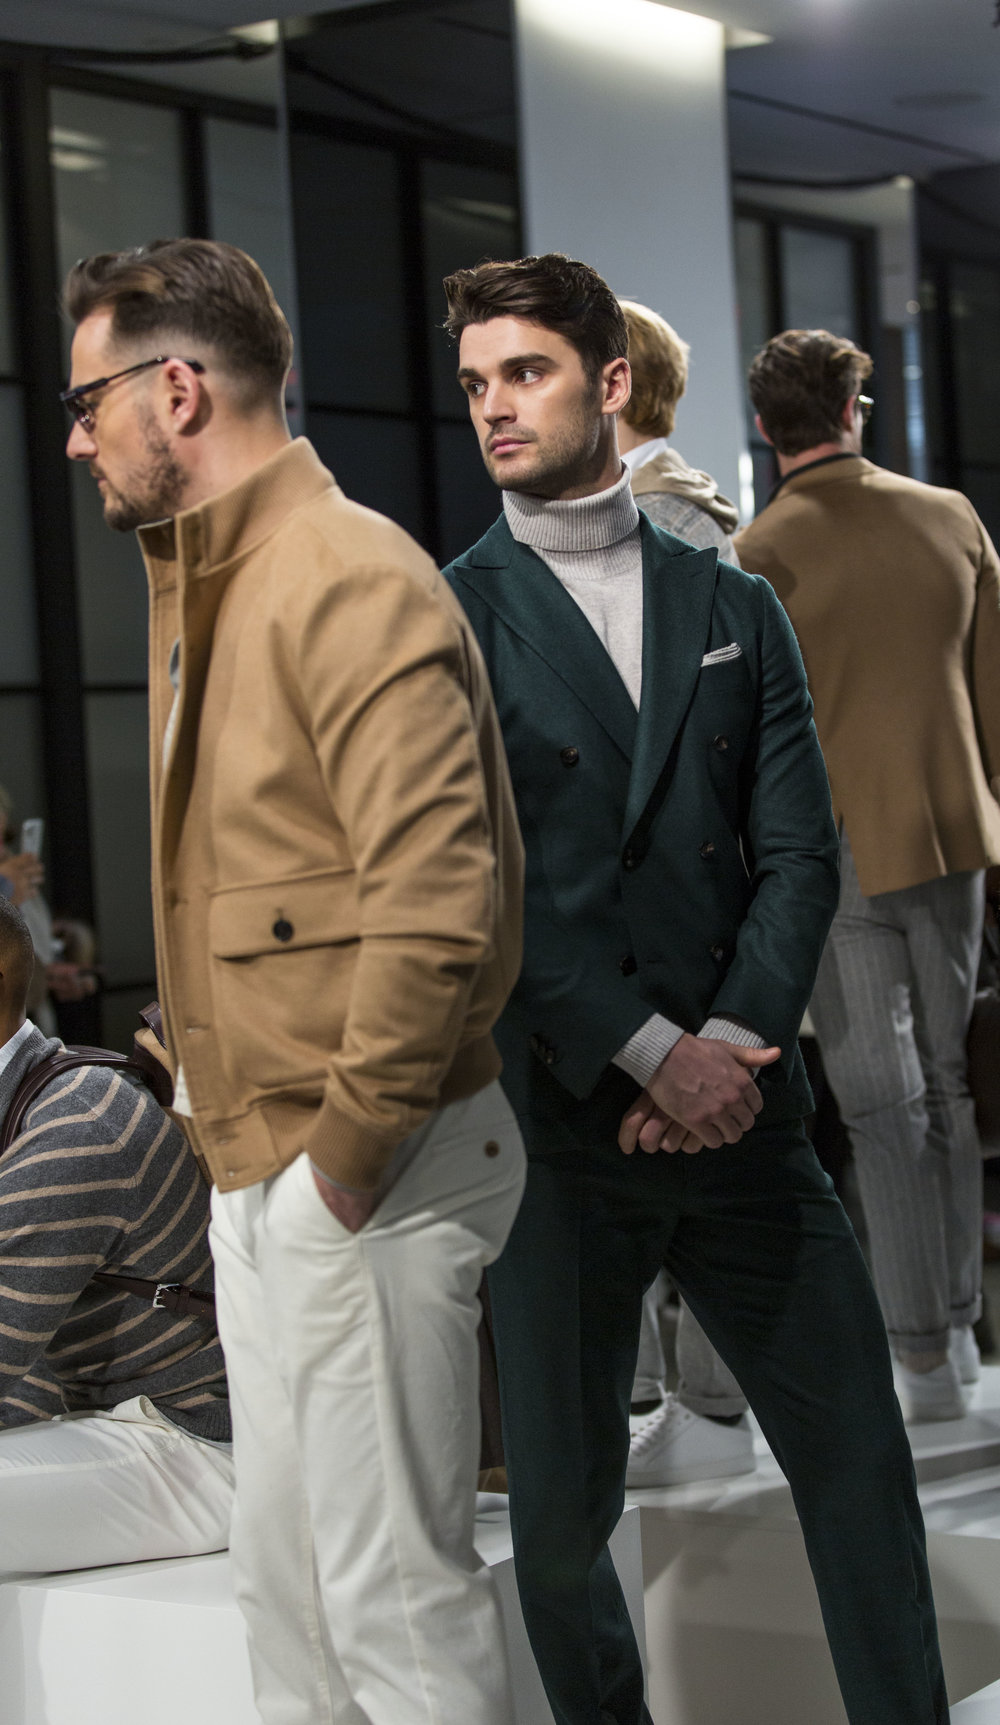 SUITSUPPLY-FALL -WINTER-NYFWM2018-MENS-COLLECTION- AW18-NYFWM-9.jpg